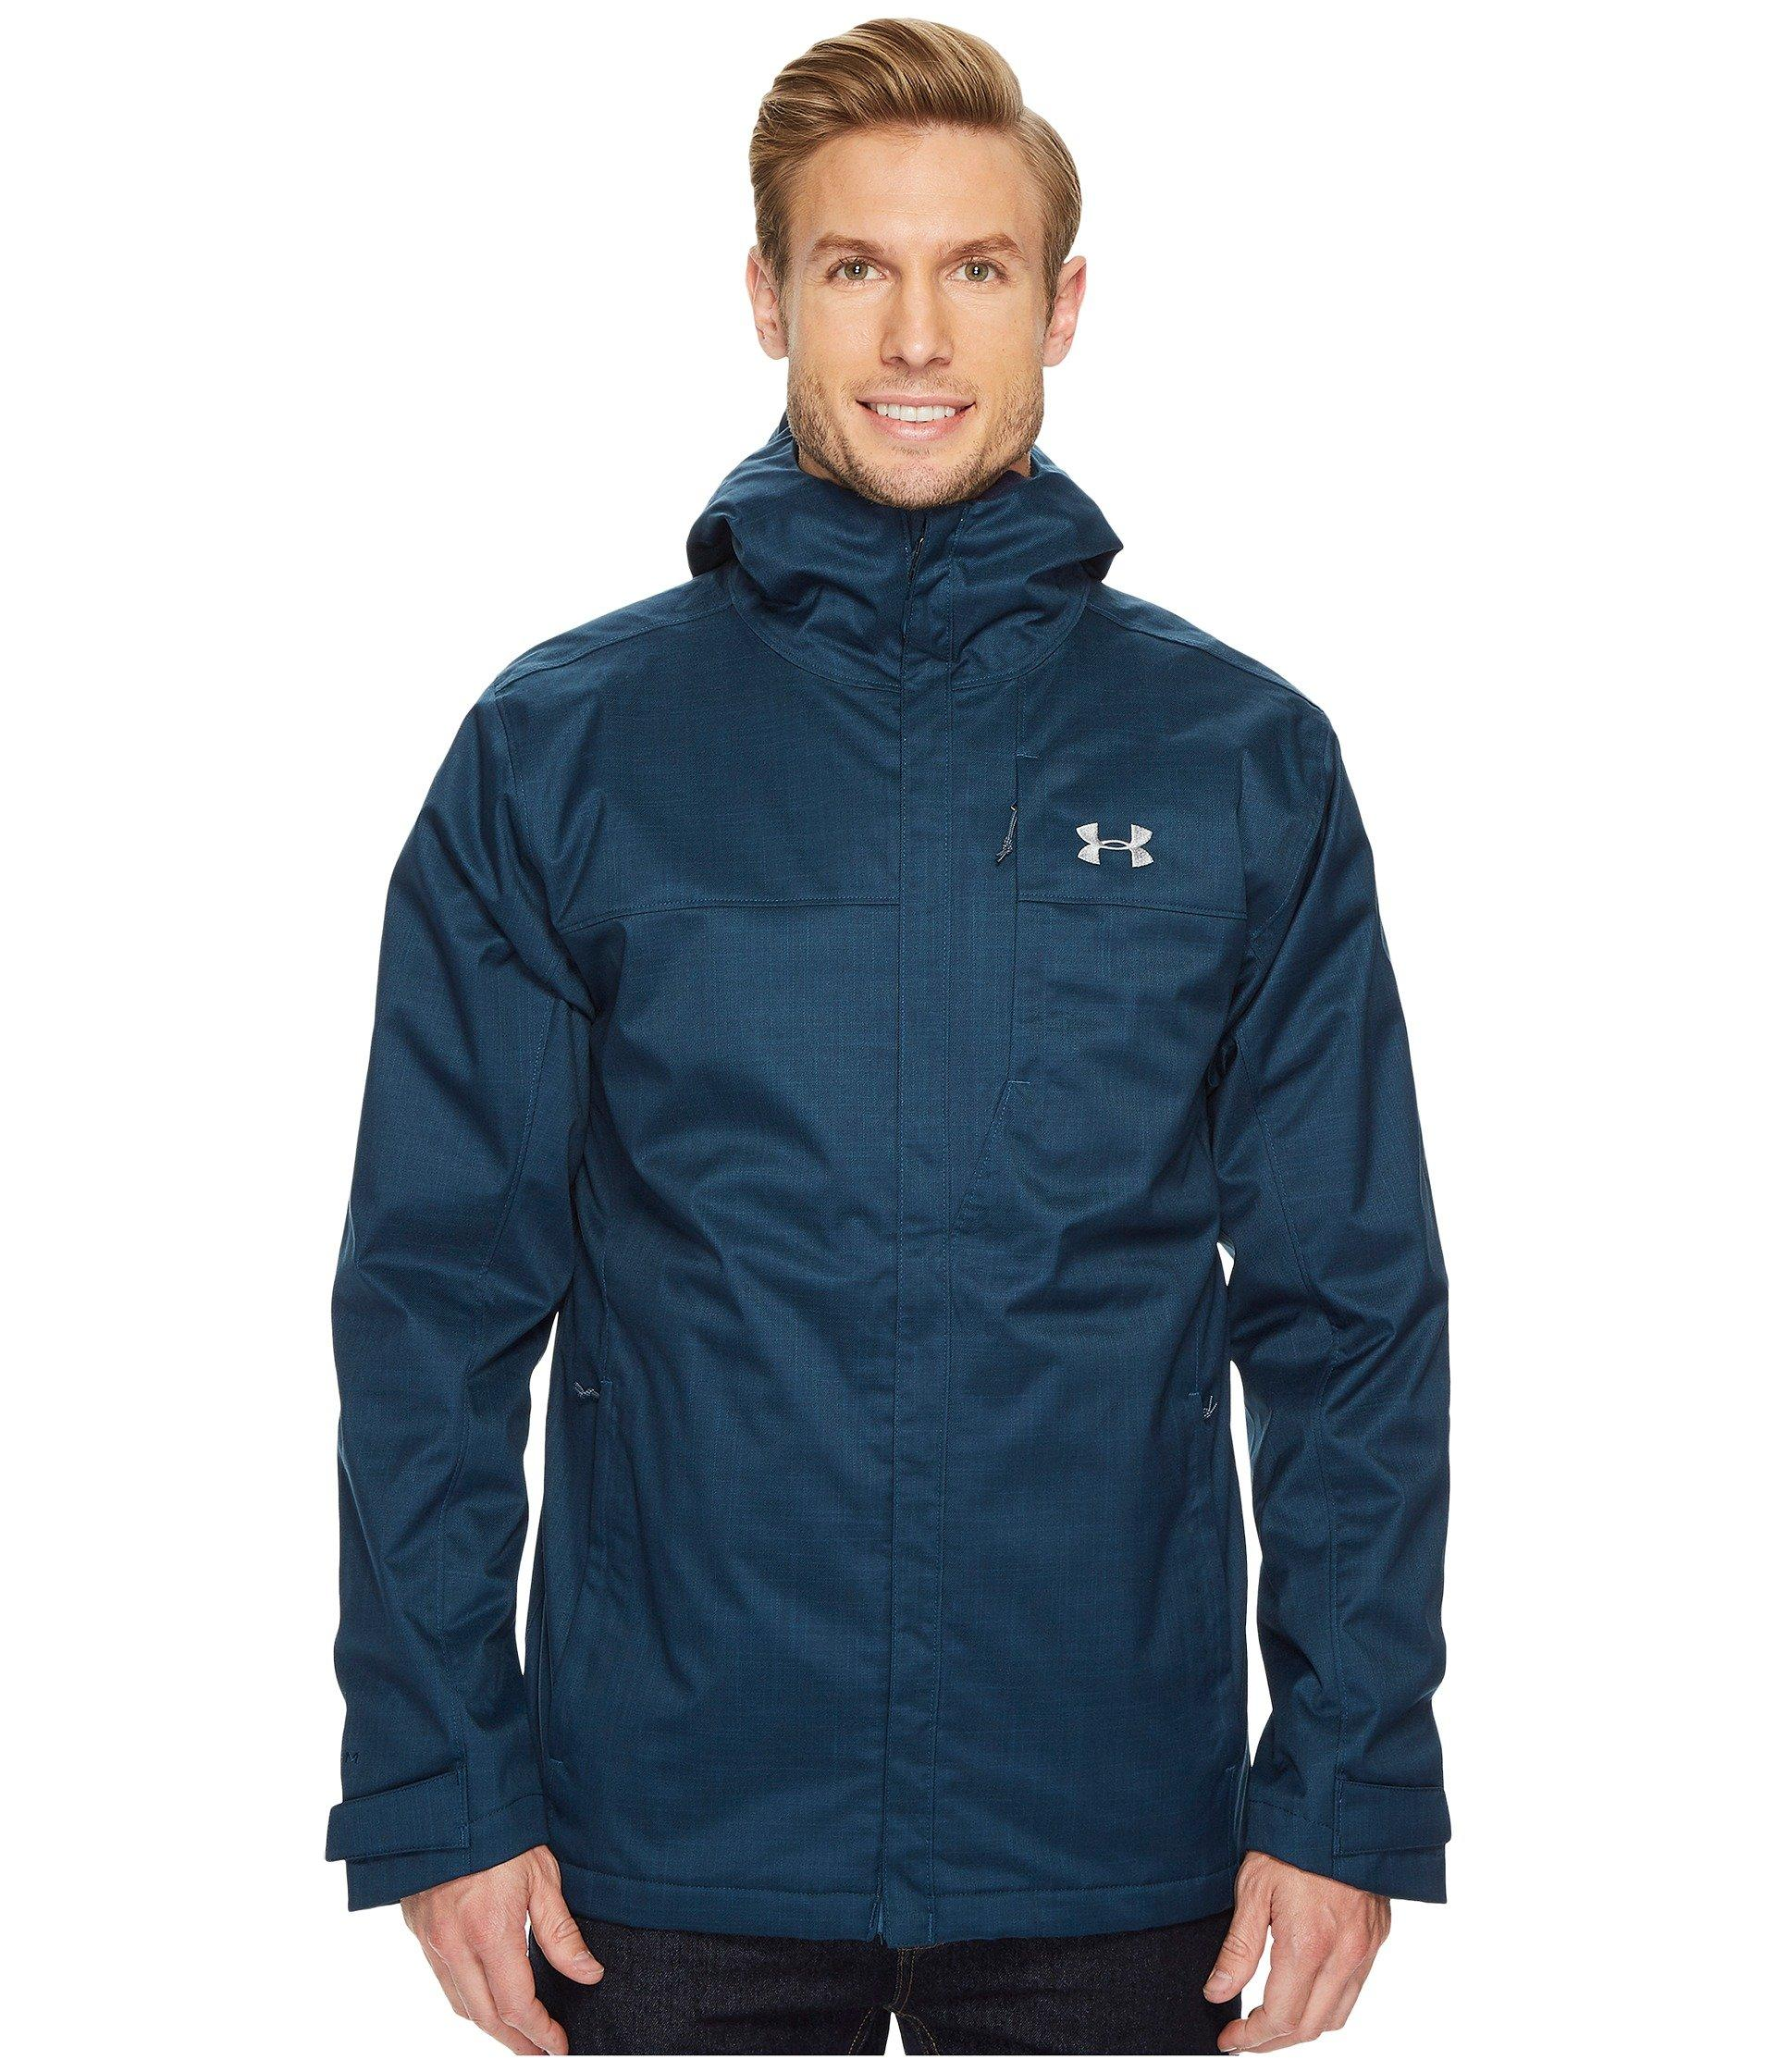 Under Armour Ua Porter 3-in-1 Jacket In True Ink/midnight Navy/steel